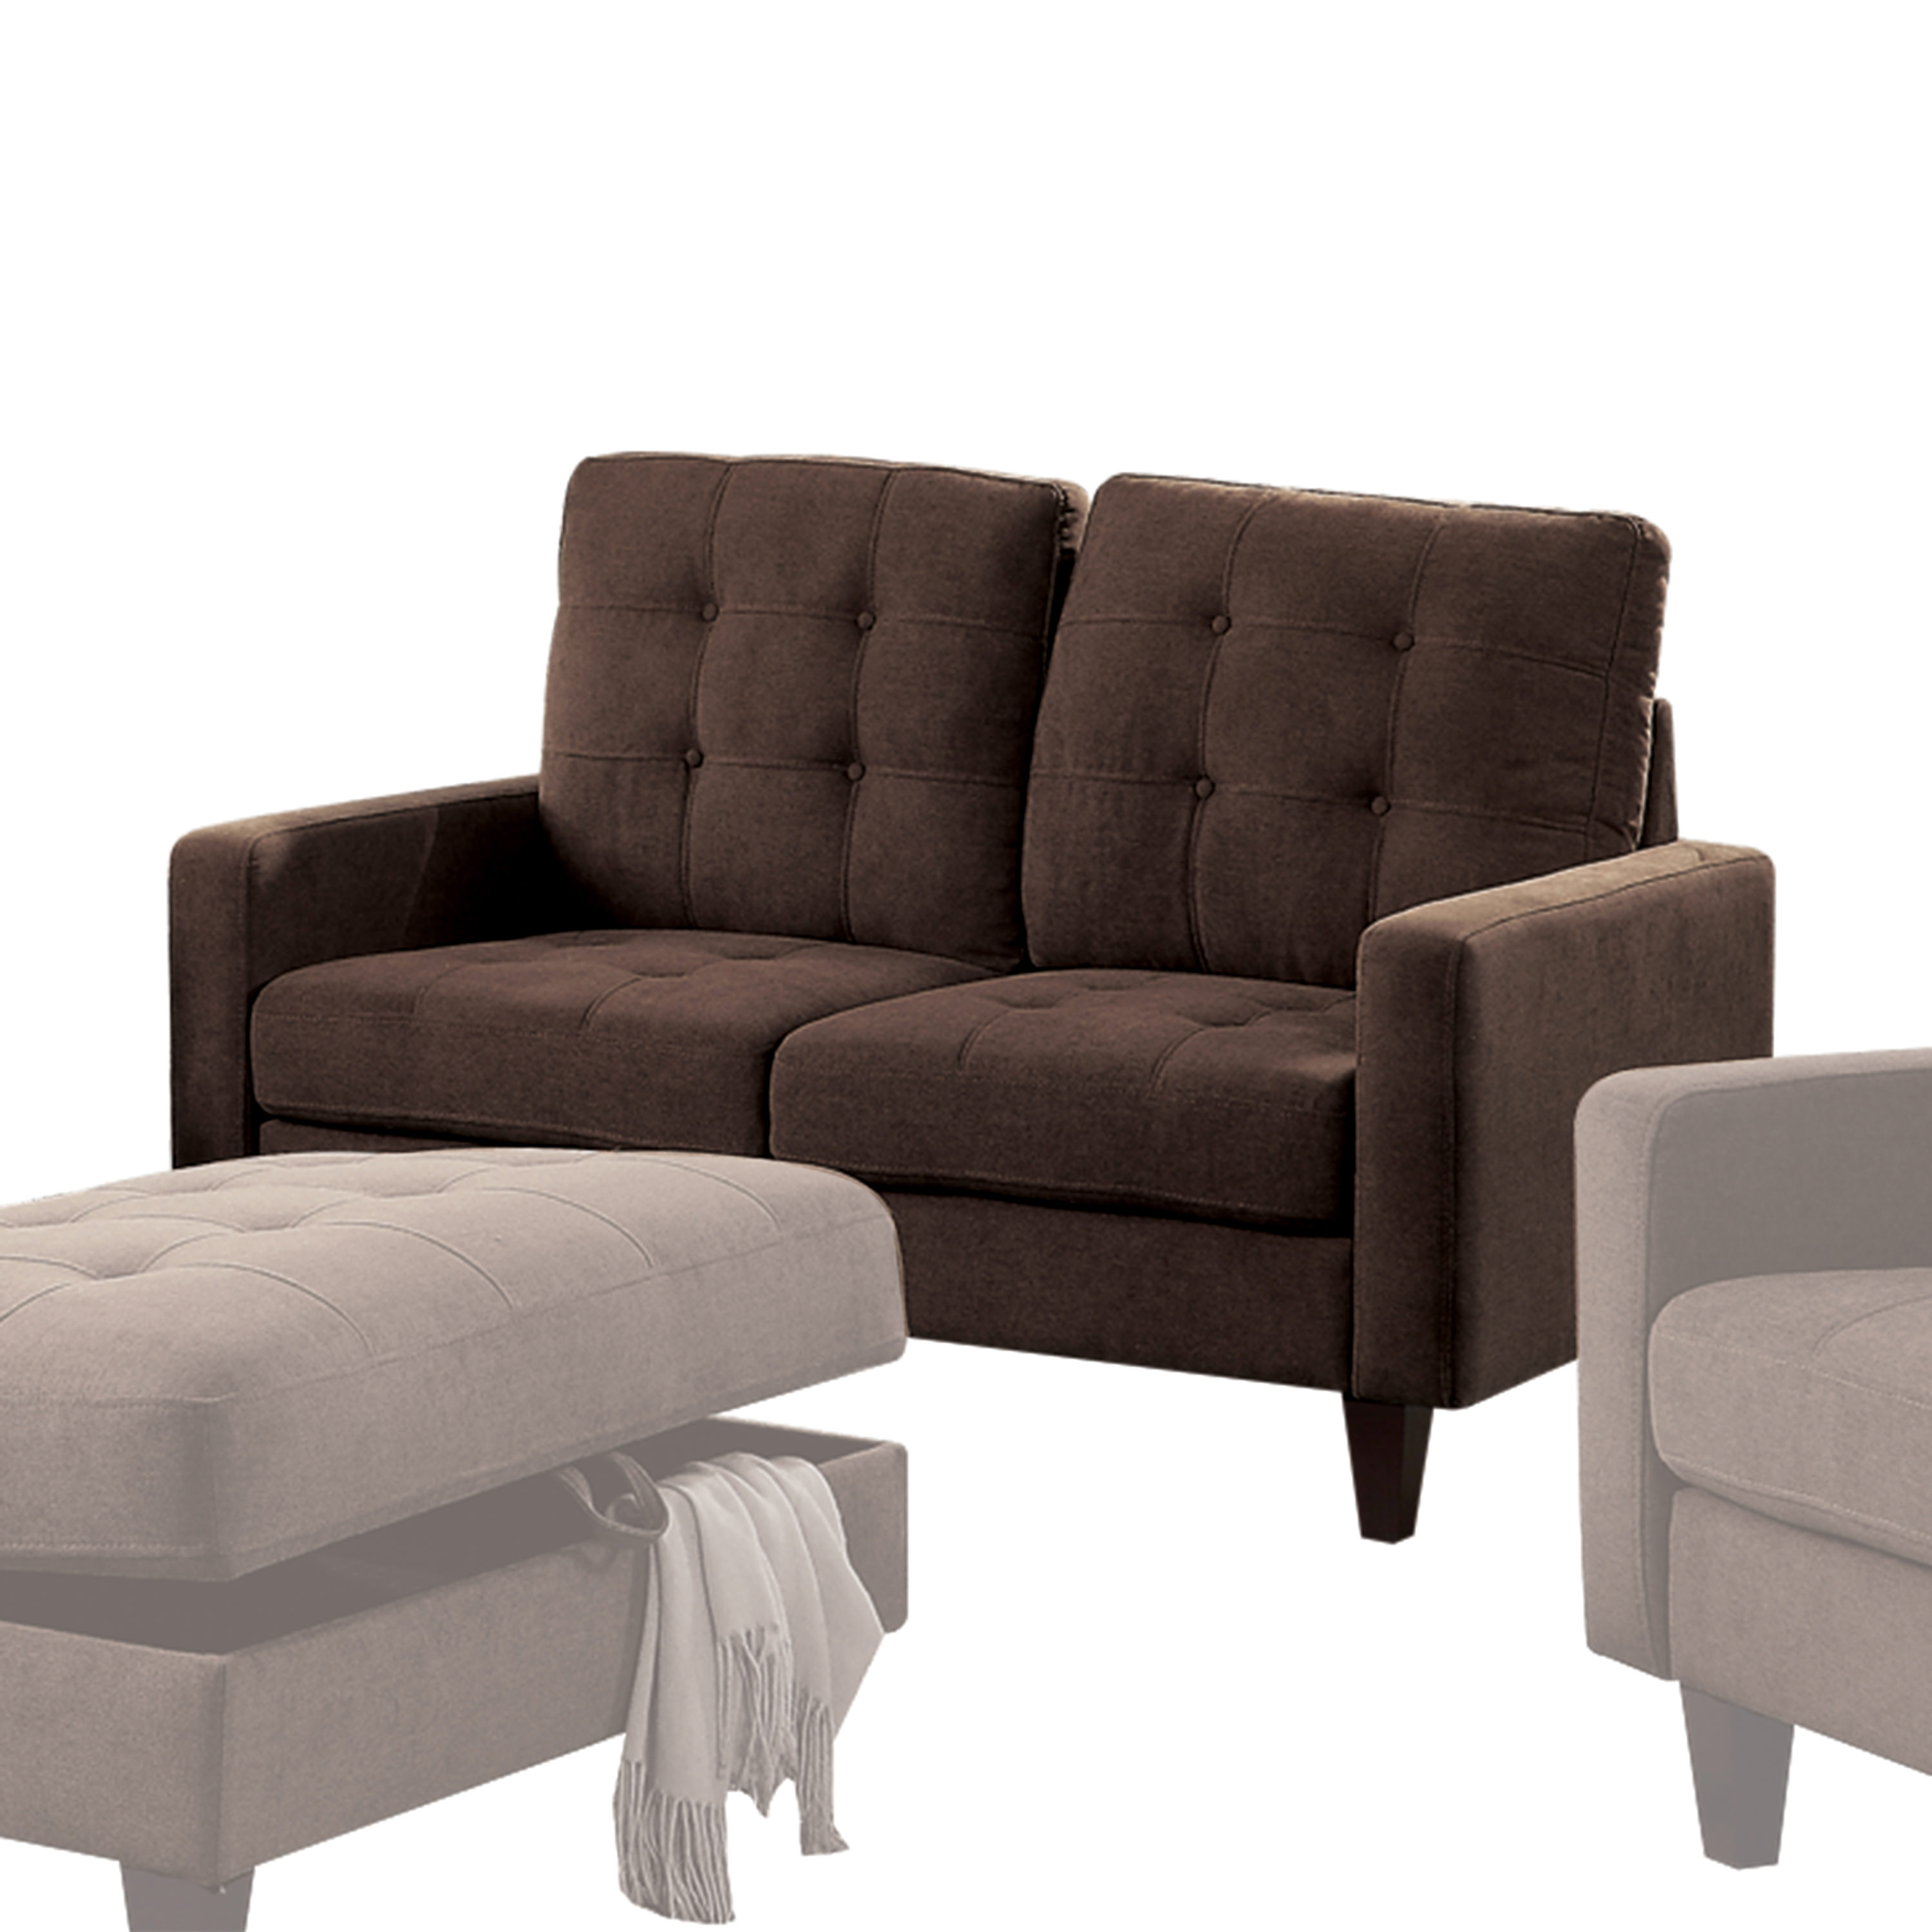 Acme Nate Memory Foam Loveseat with Tufting in Chocolate Fabric